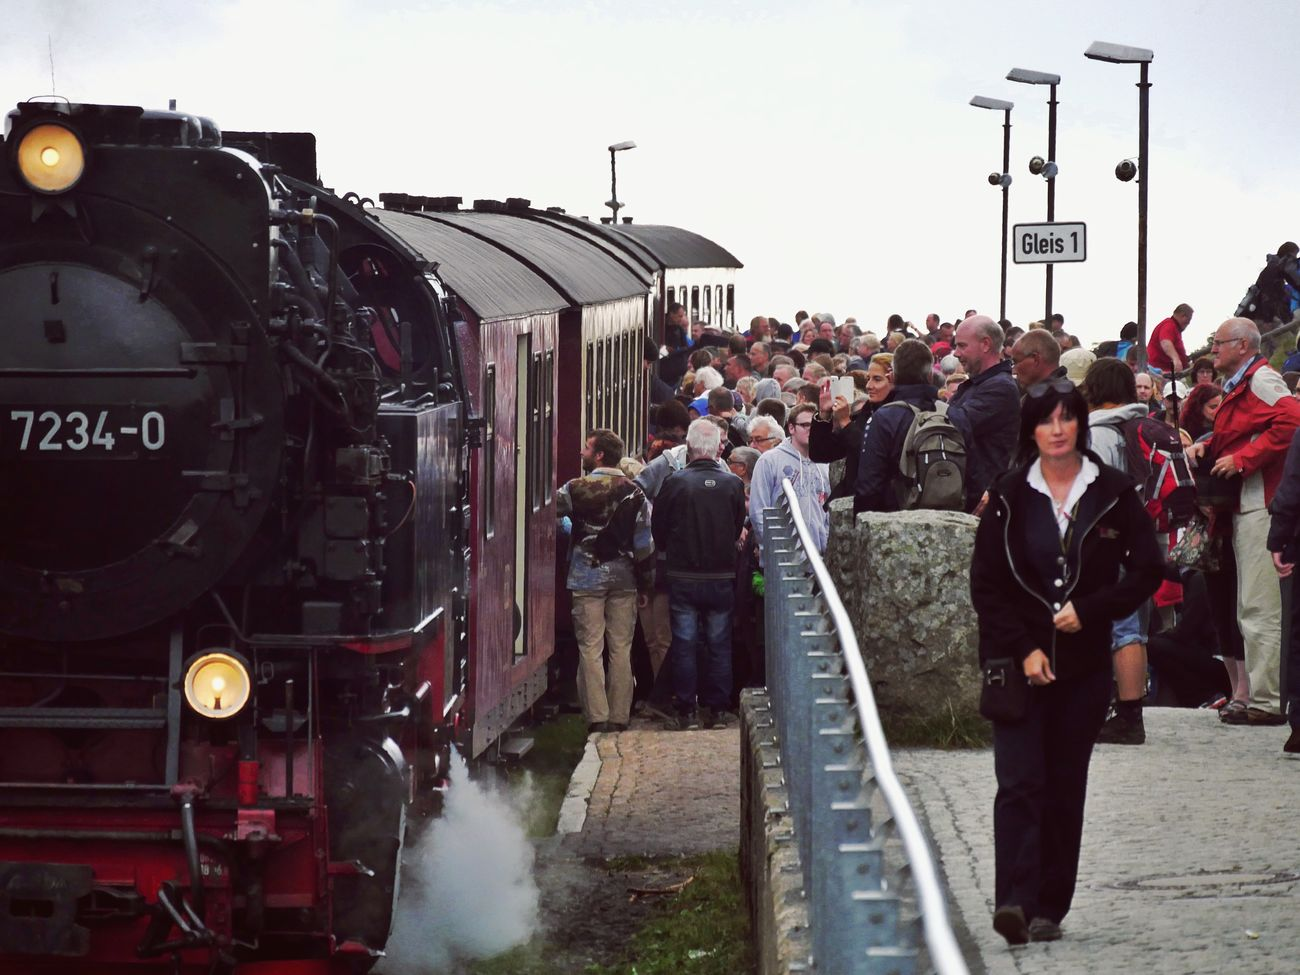 Rush Hour on the Brocken Harz Germany Brockenbahn Harzer Schmalspurbahn Railway Railwaystation Rail Railway Track Railway Station Crowd Crowded People Steam Locomotive Steamtrain Steam Train Steam Trains Showcase July Global Photographer Works Exhibition Global Photographers Alliance Transportation Transport